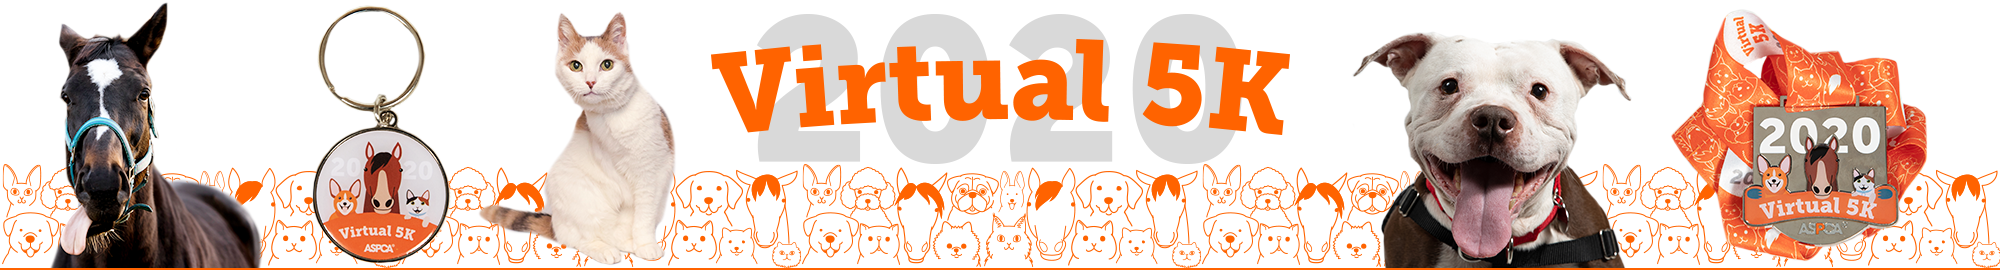 2020 ASPCA Virtual 5K